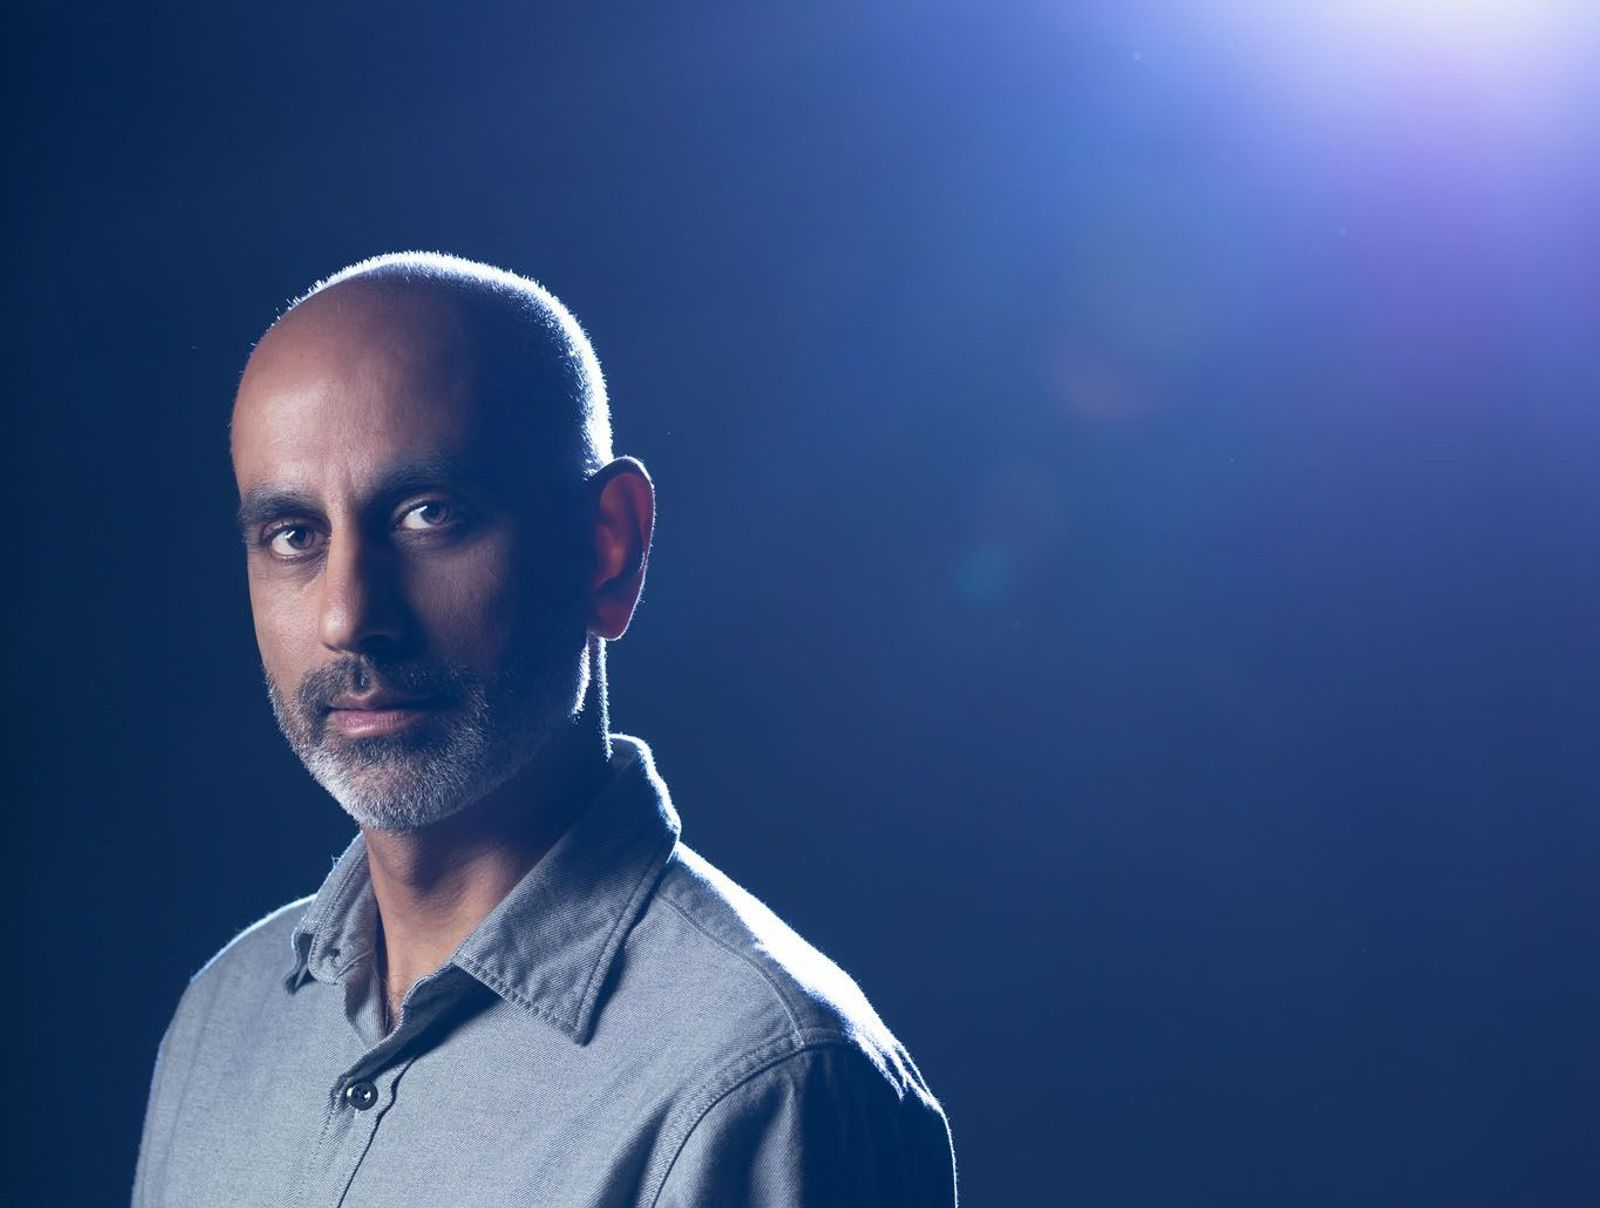 NatGeo Explorer Classroom: Gautam Shah on turning gamers into conservationists, May 21st @ 7pm